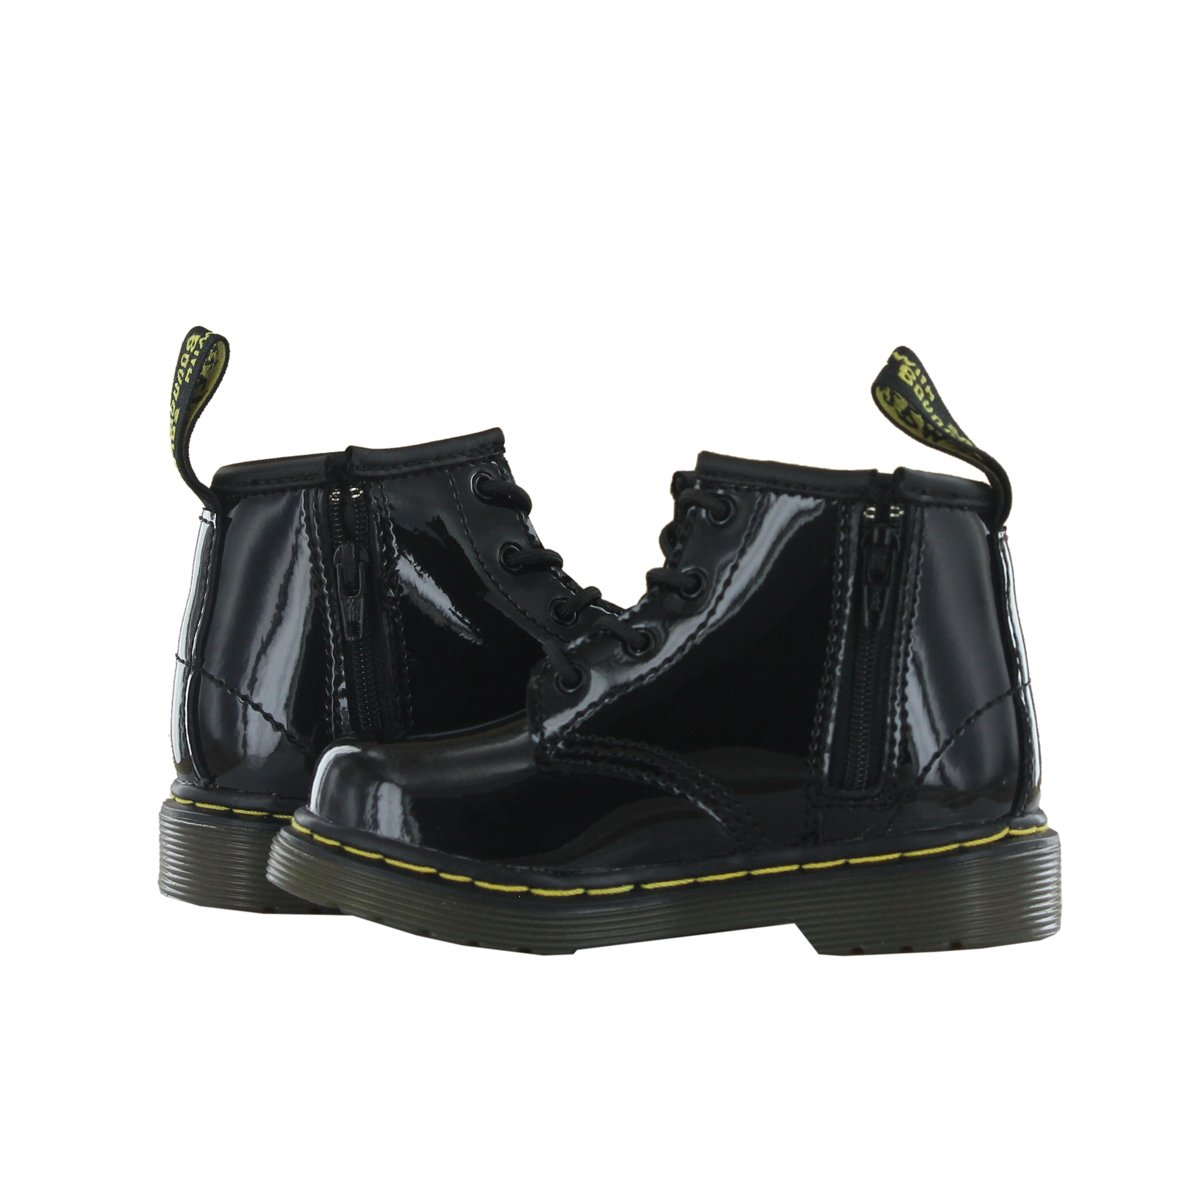 leather dr martens brooklee 15373003 infant boot in patent  Amazon.co.uk   Shoes   Bags 7ea62bbc382